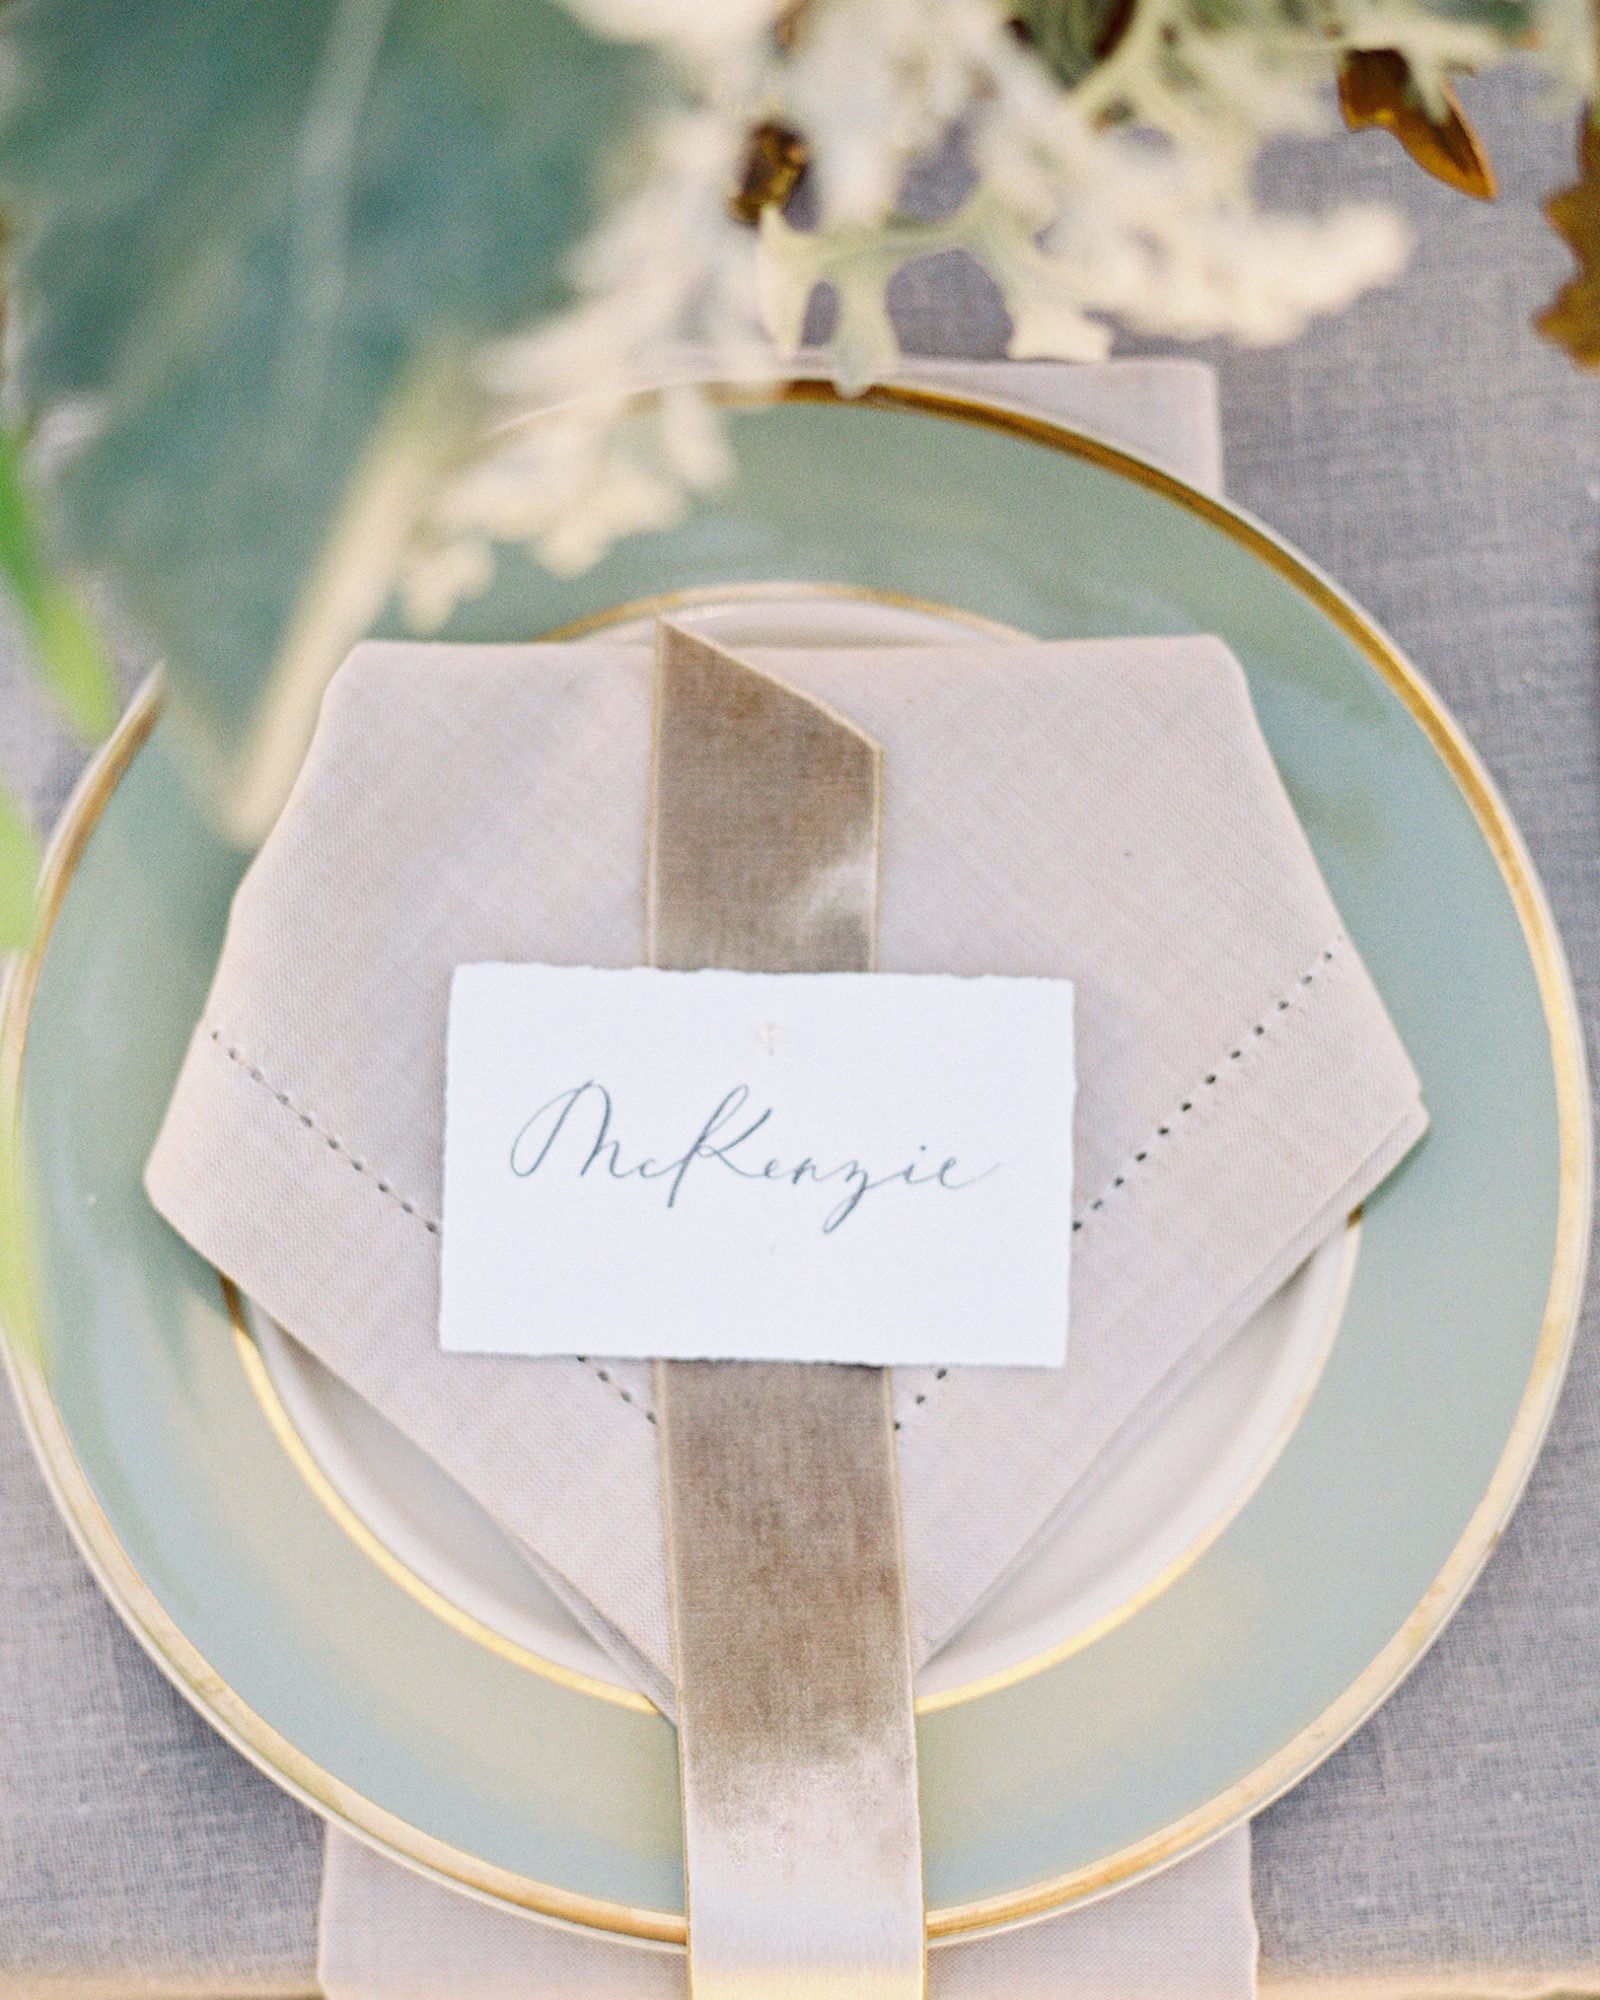 mckenzie-brandon-wedding-placesetting-78-s112364-1115.jpg